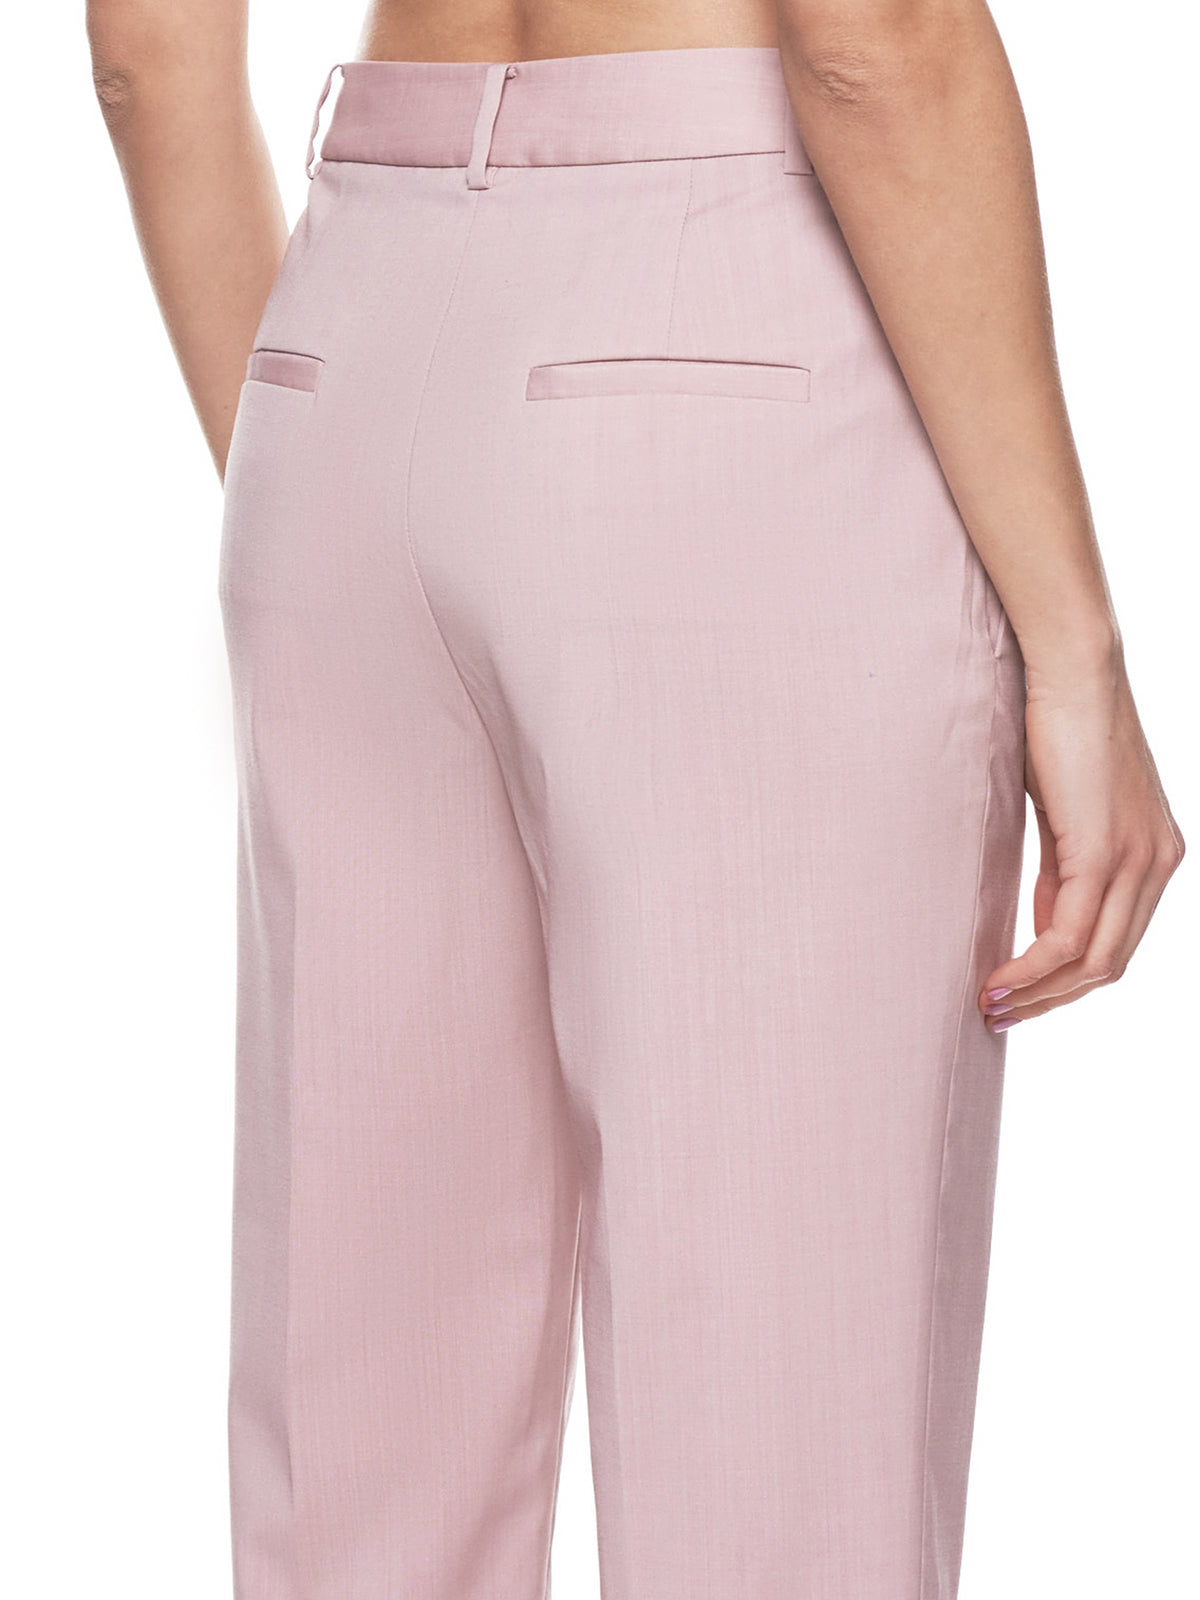 Tibi Trousers - Hlorenzo Detail 2